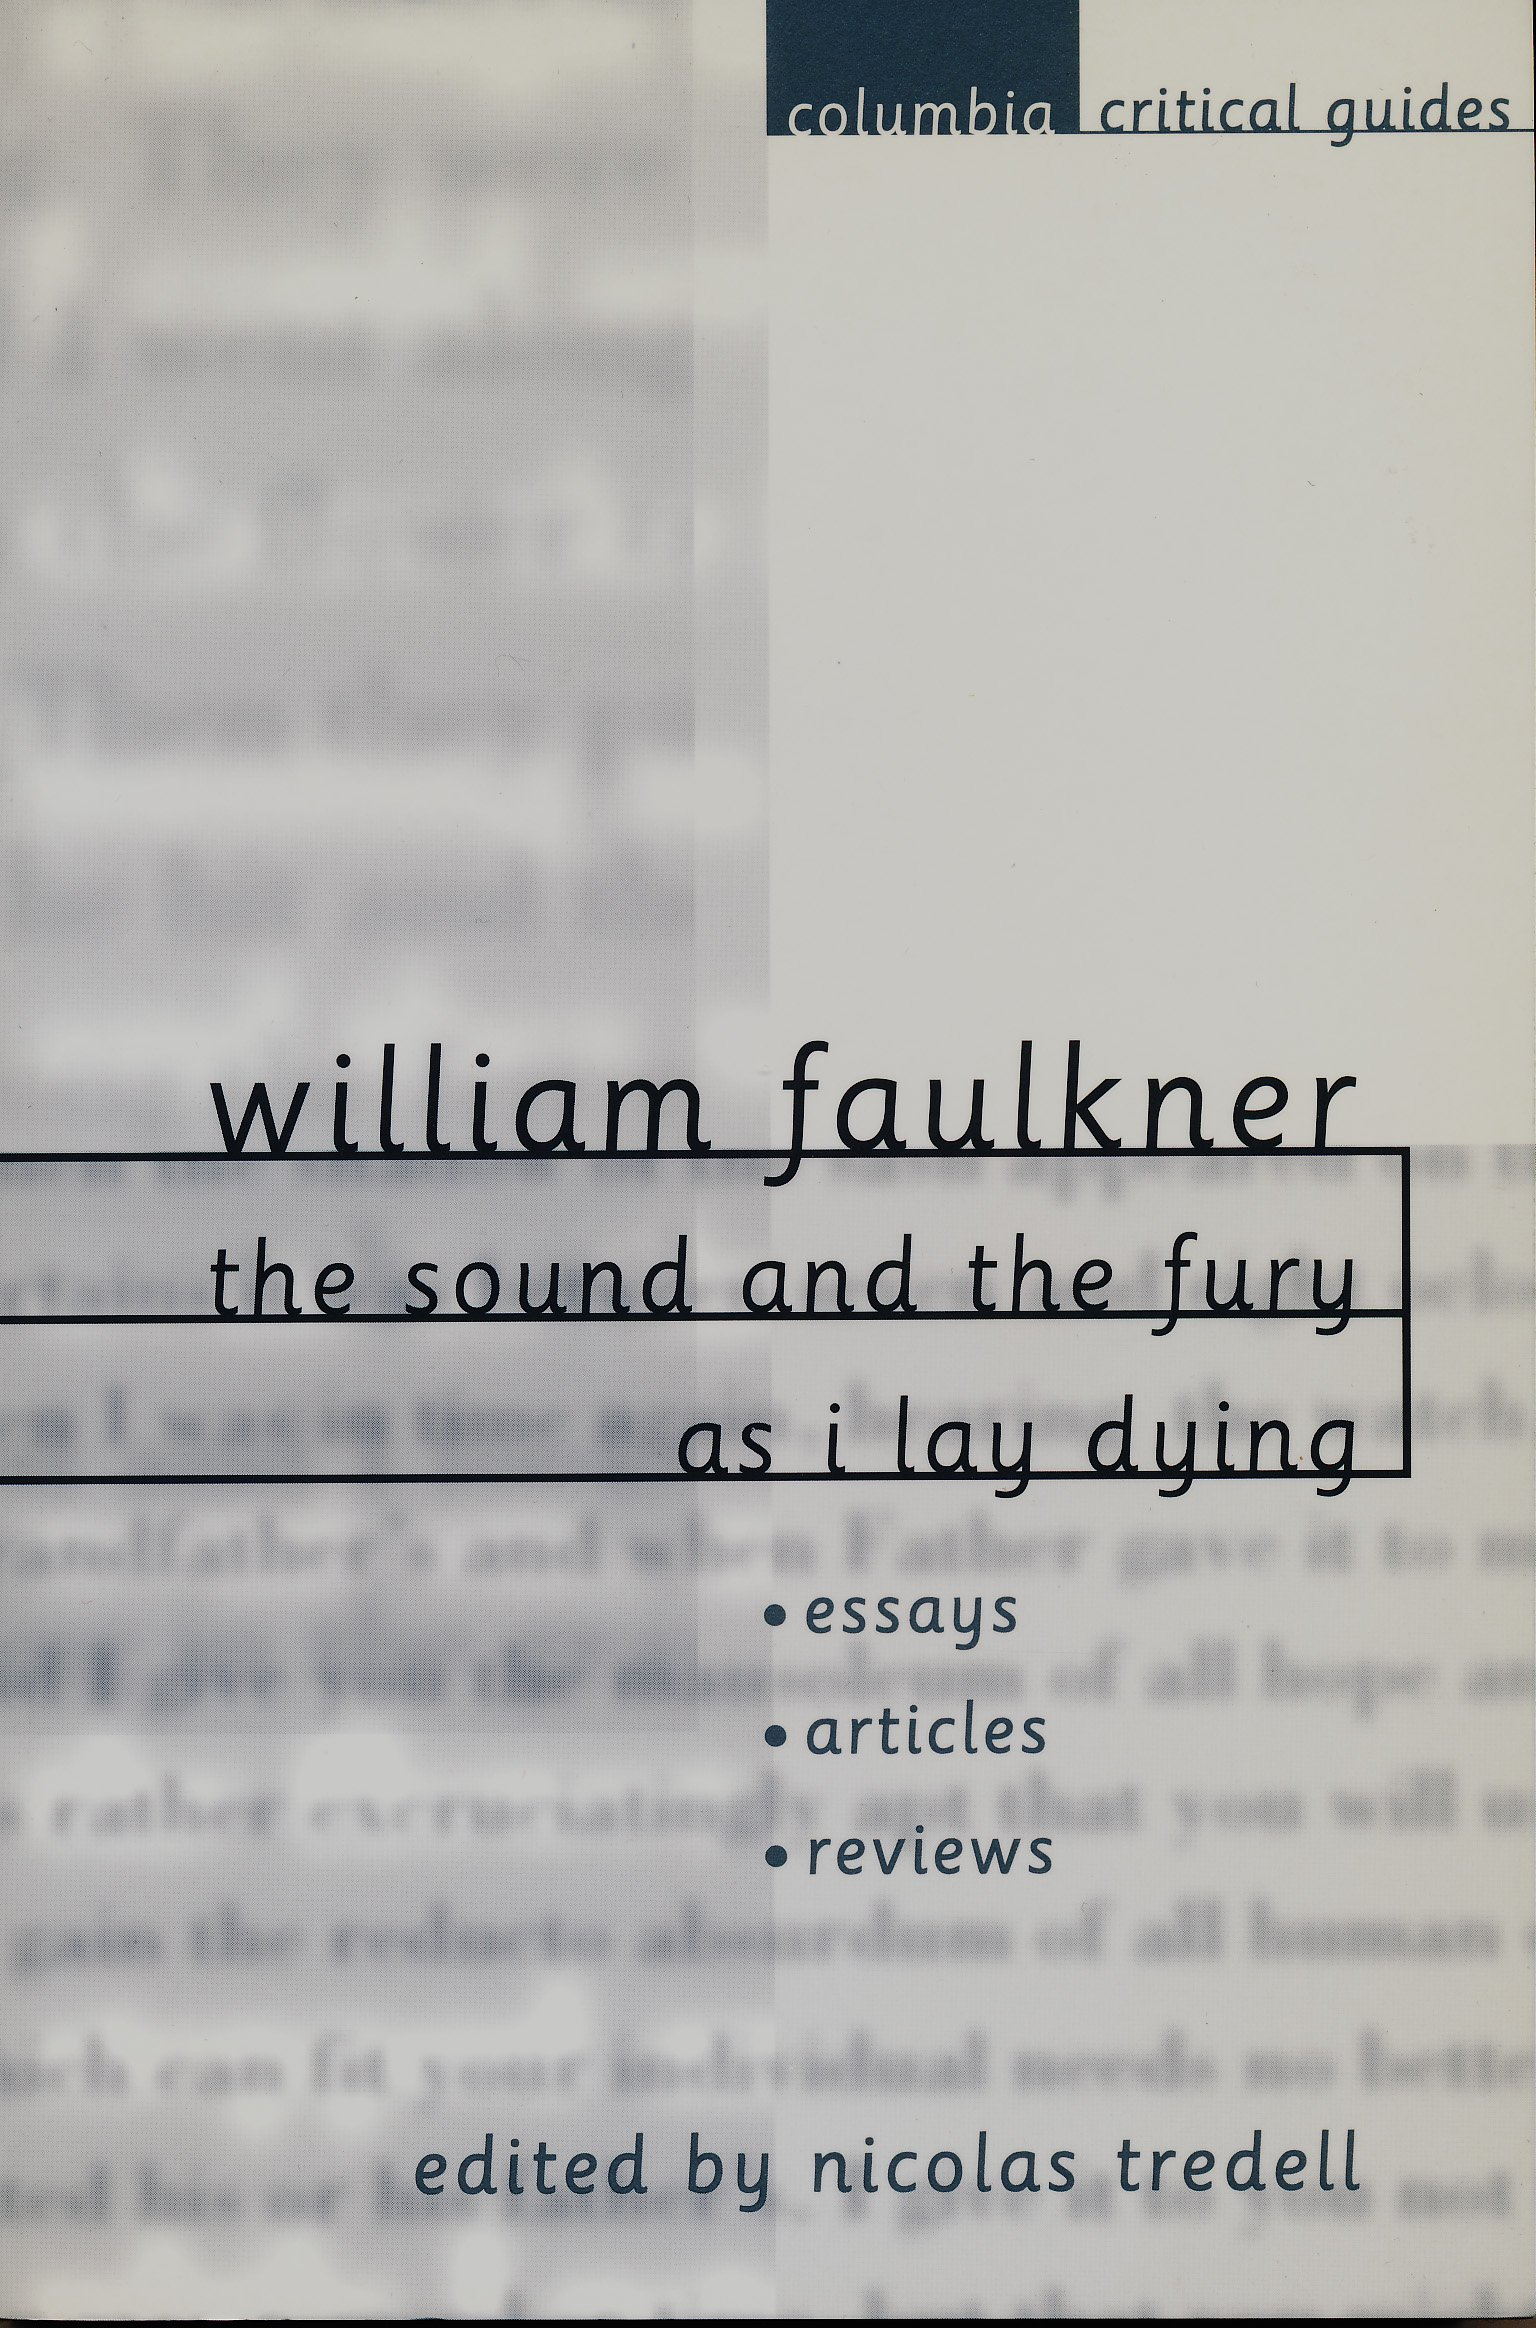 com william faulkner the sound and the fury and as i lay com william faulkner the sound and the fury and as i lay dying 9780231121897 nicolas tredell books